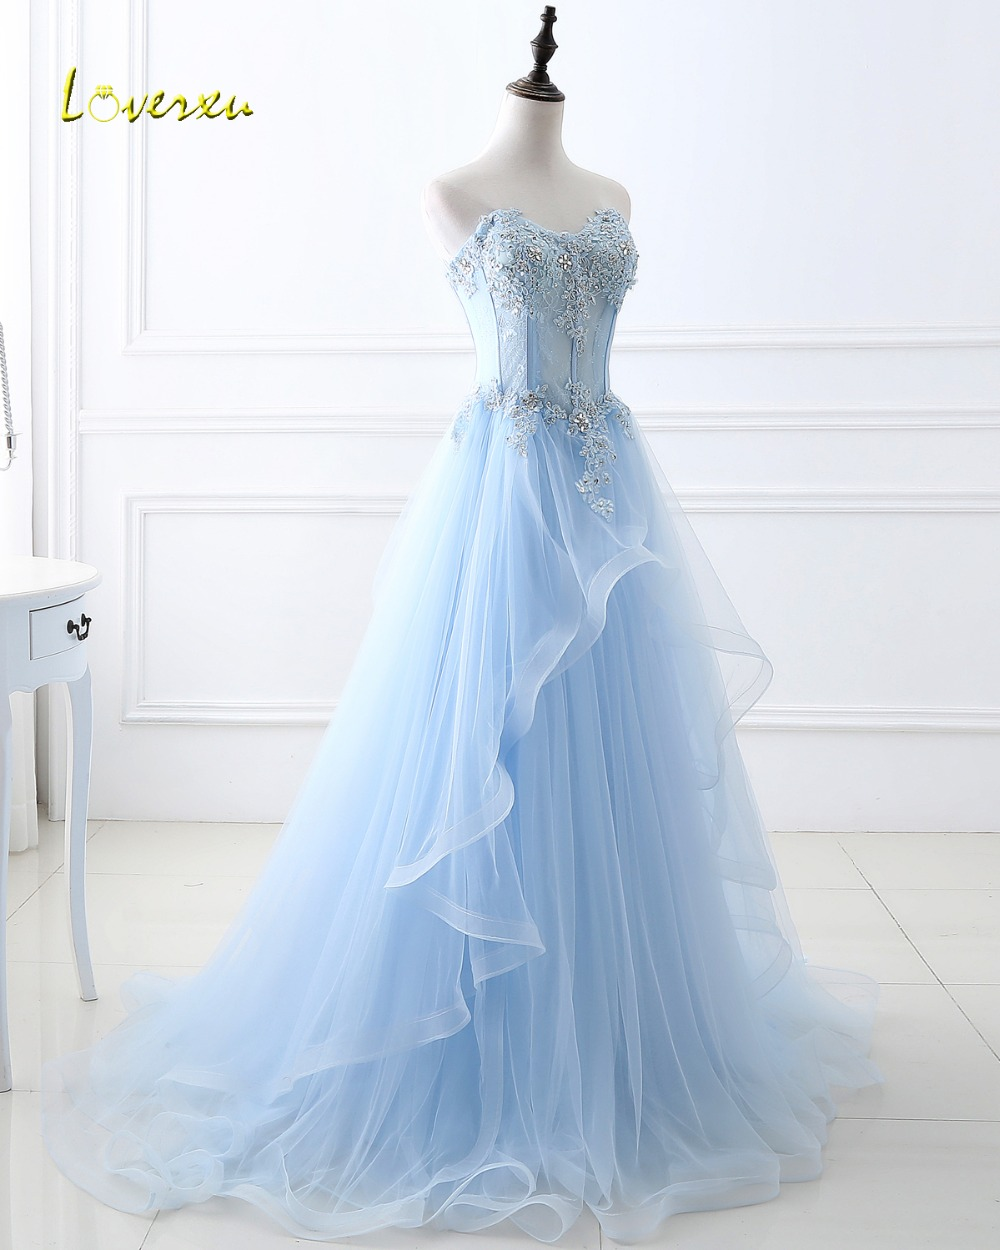 Loverxu Elegant Strapless Appliques Lace Up A-Line   Evening     Dresses   2019 Delicate Beaded Ruched Organza Prom   Dress   Robe De Soiree